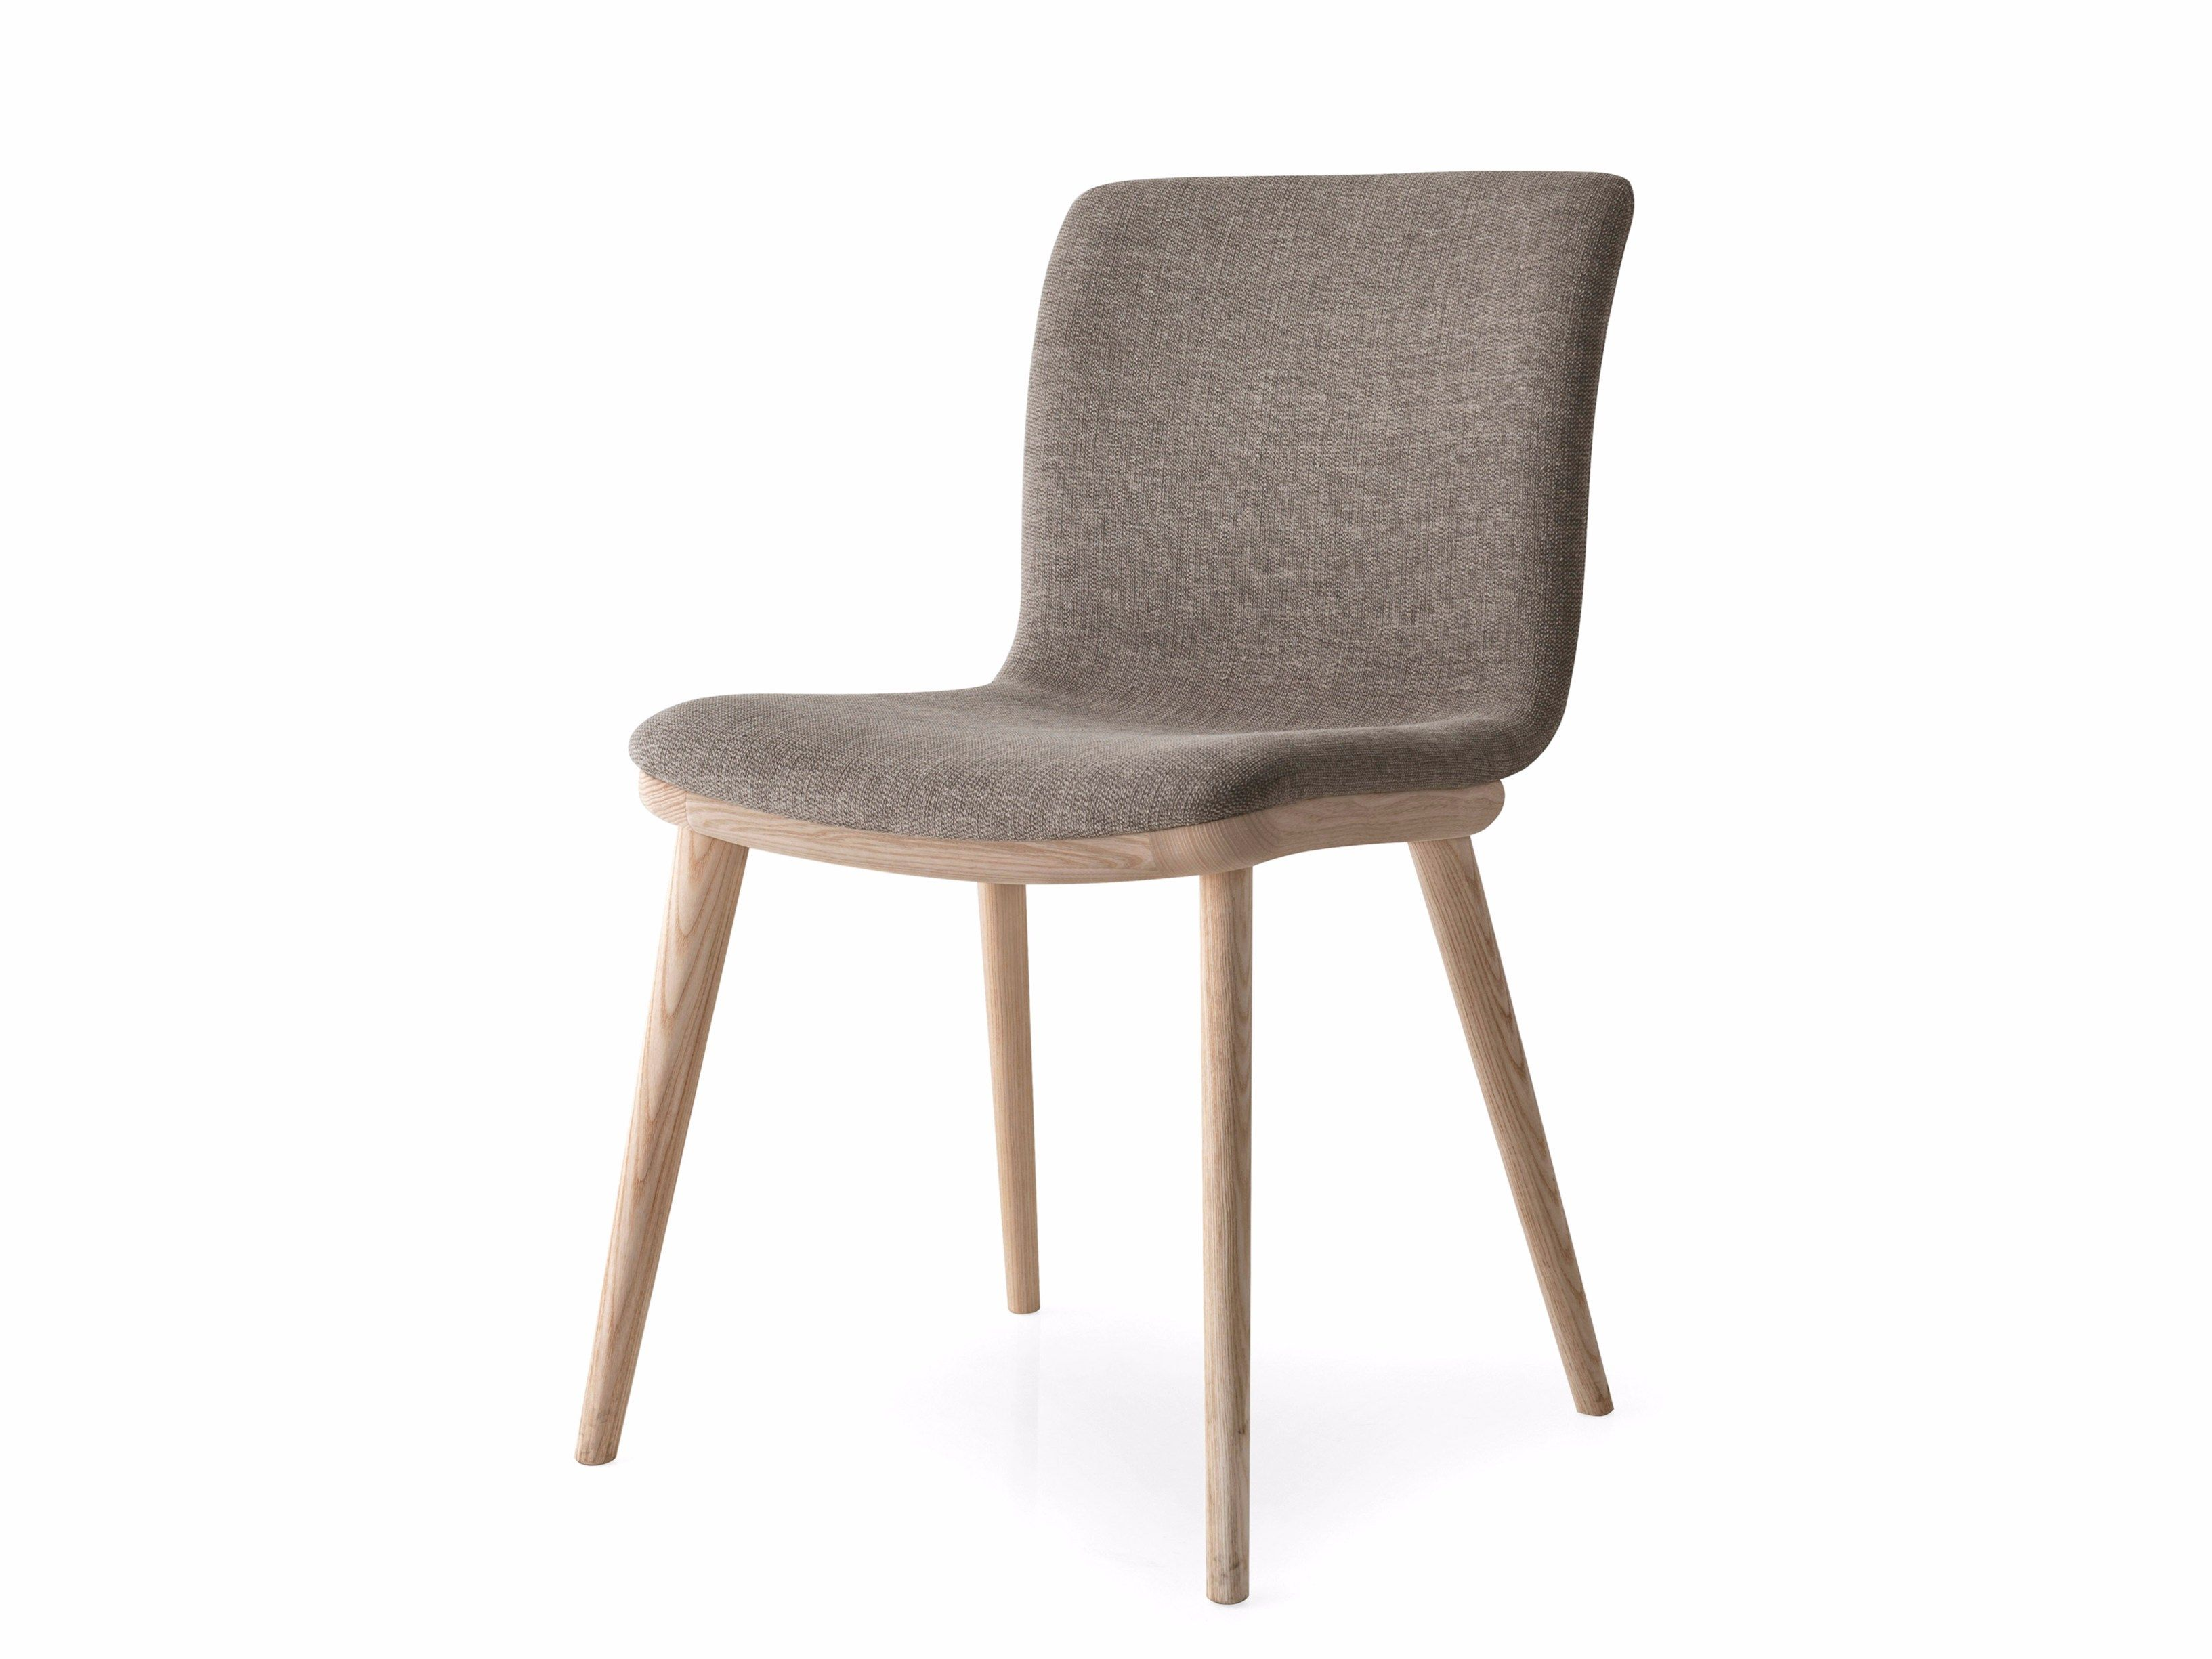 Upholstered Fabric Chair Annie By Calligaris Design Edi E Paolo Ciani Design Stuhle Design Kunstleder